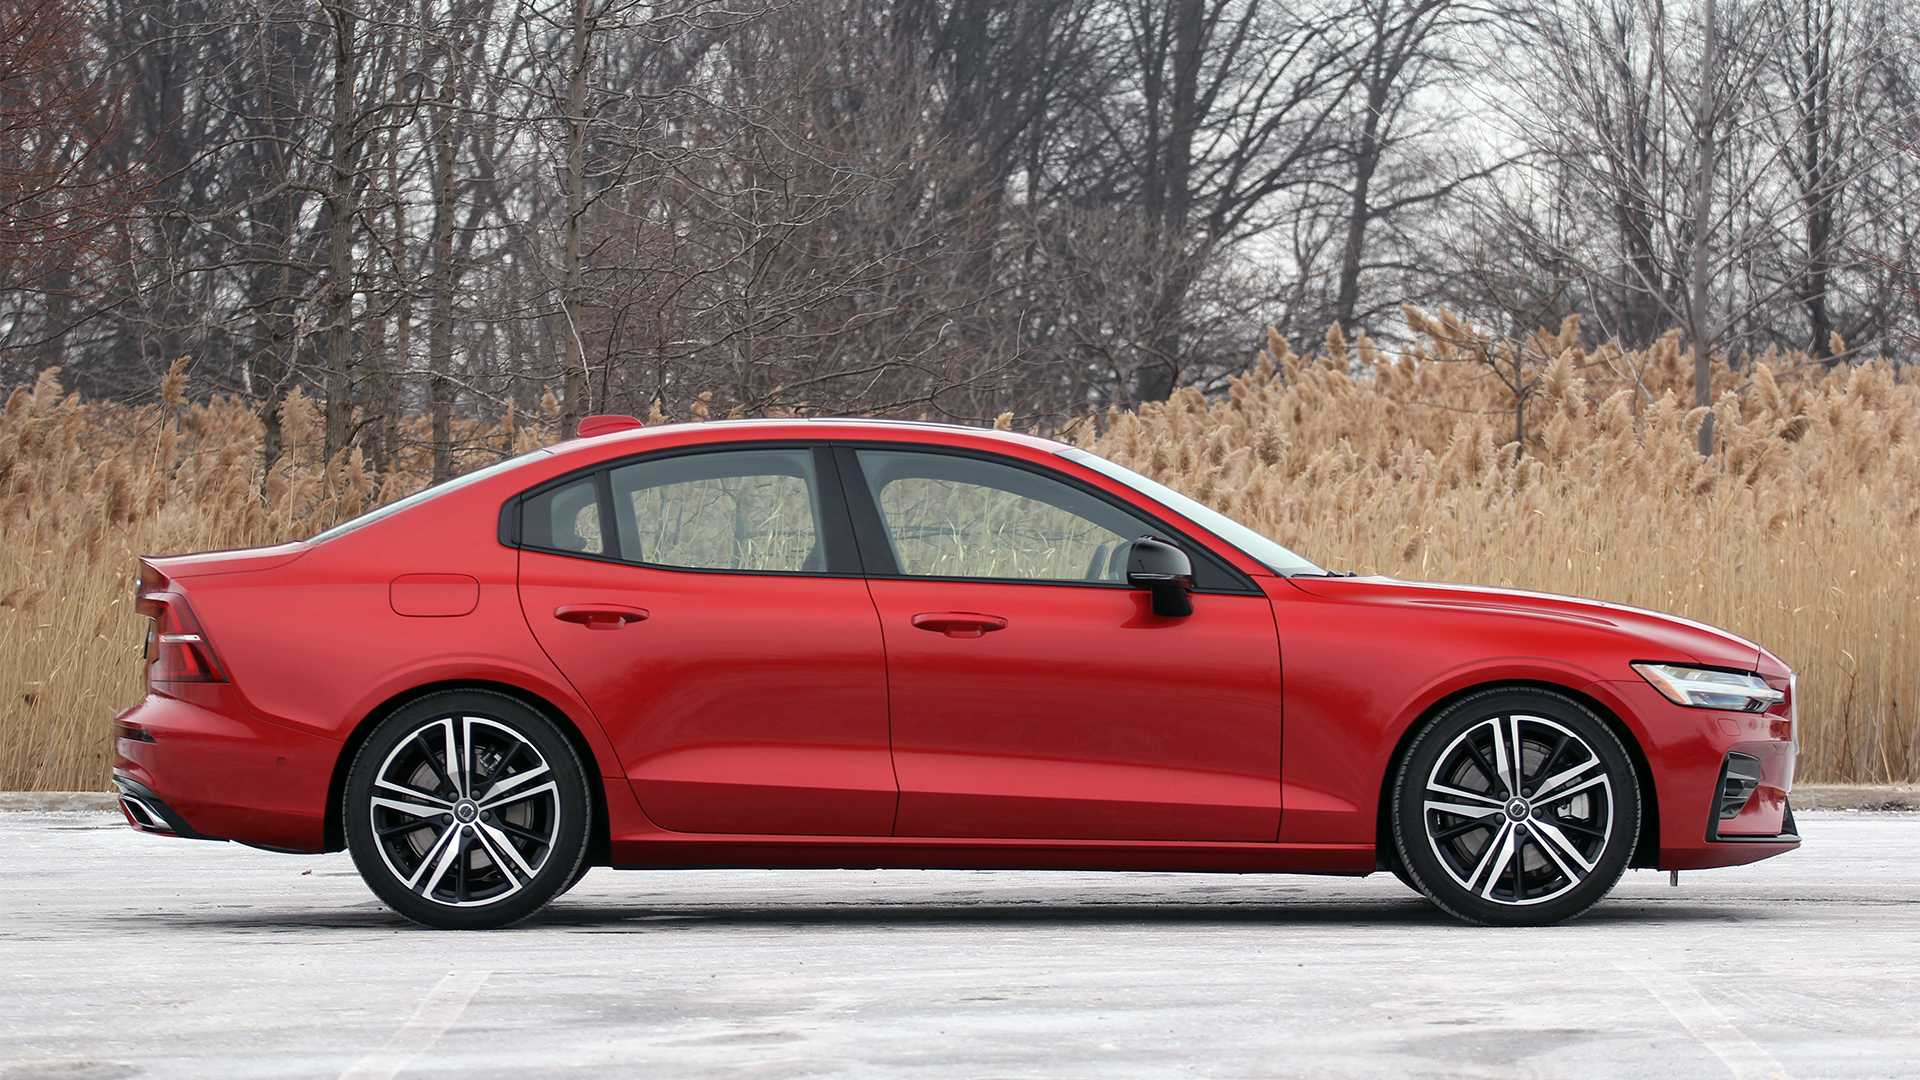 2019 Volvo S60 T6 Awd R Design Review Trickle Down Effect